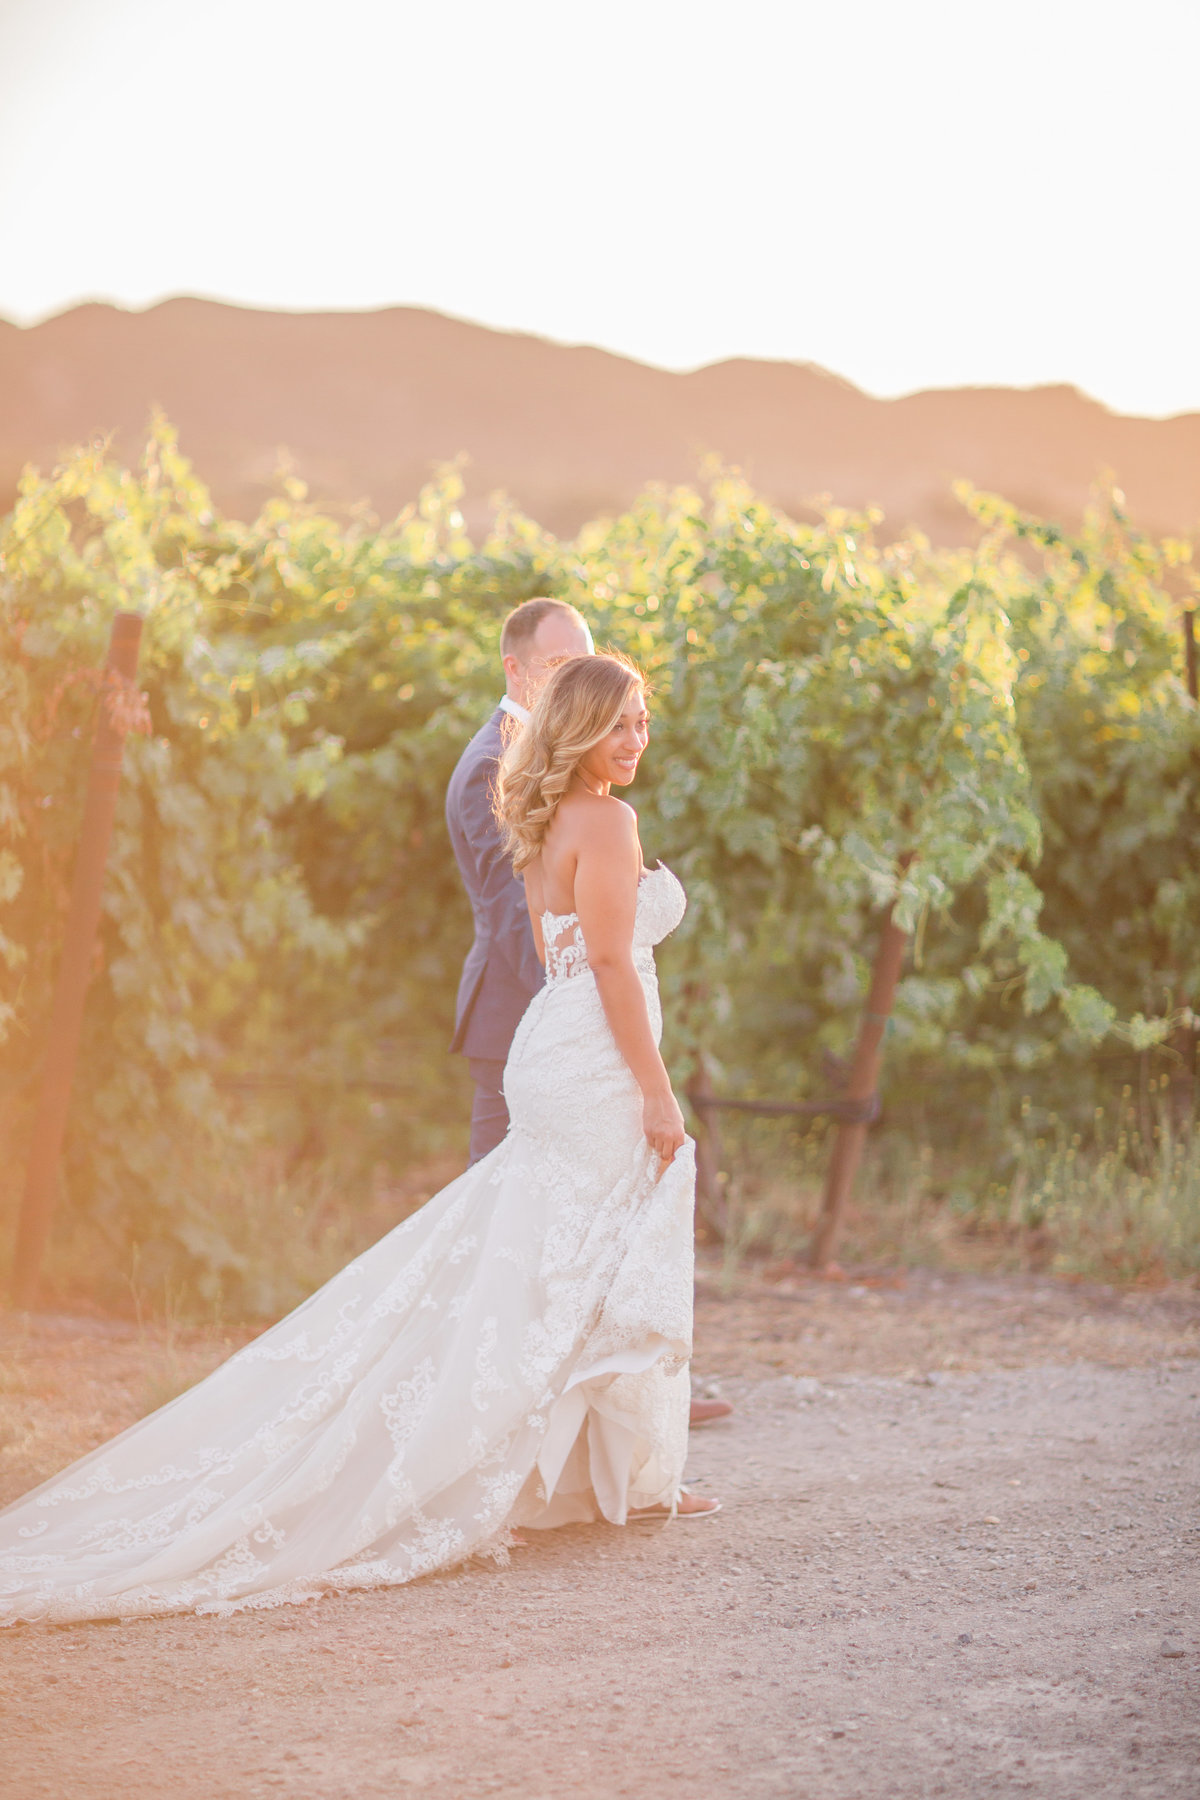 Jenna & Andrew's Oyster Ridge Wedding | Paso Robles Wedding Photographer | Katie Schoepflin Photography564